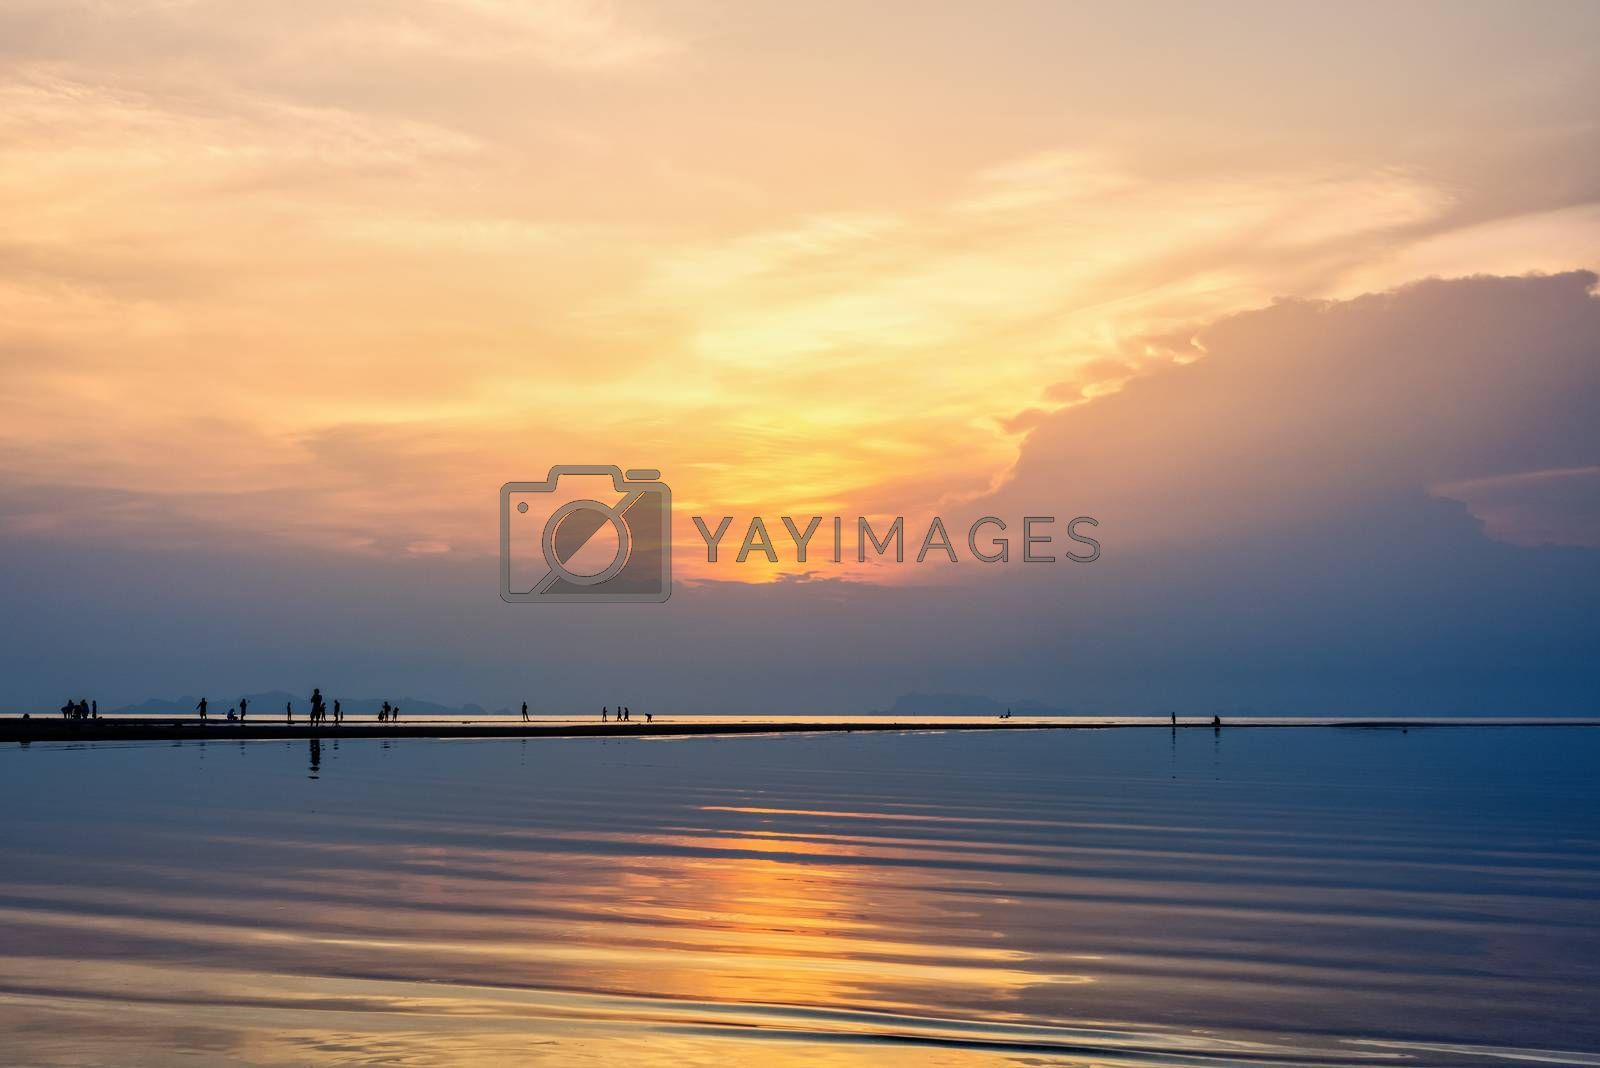 Silhouette of people relaxing on the beach watching the beautiful natural landscape colorful of the sky and the sea during a sunset at Nathon Sunset Viewpoint in Ko Samui island, Surat Thani, Thailand